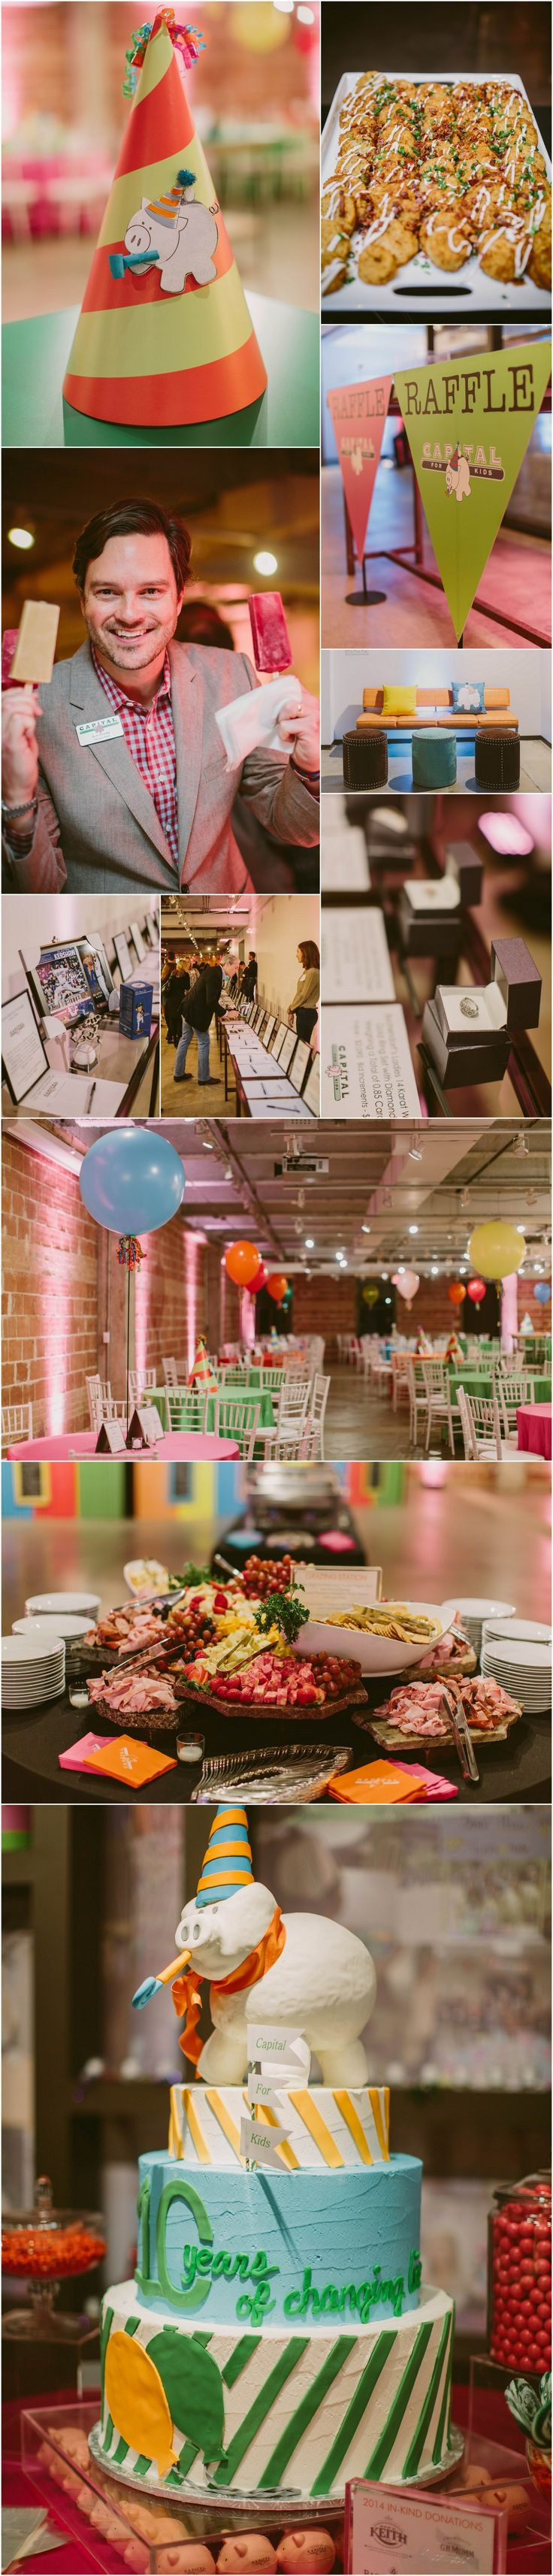 28 best images about Party Tents on Pinterest | Texas hill country ...